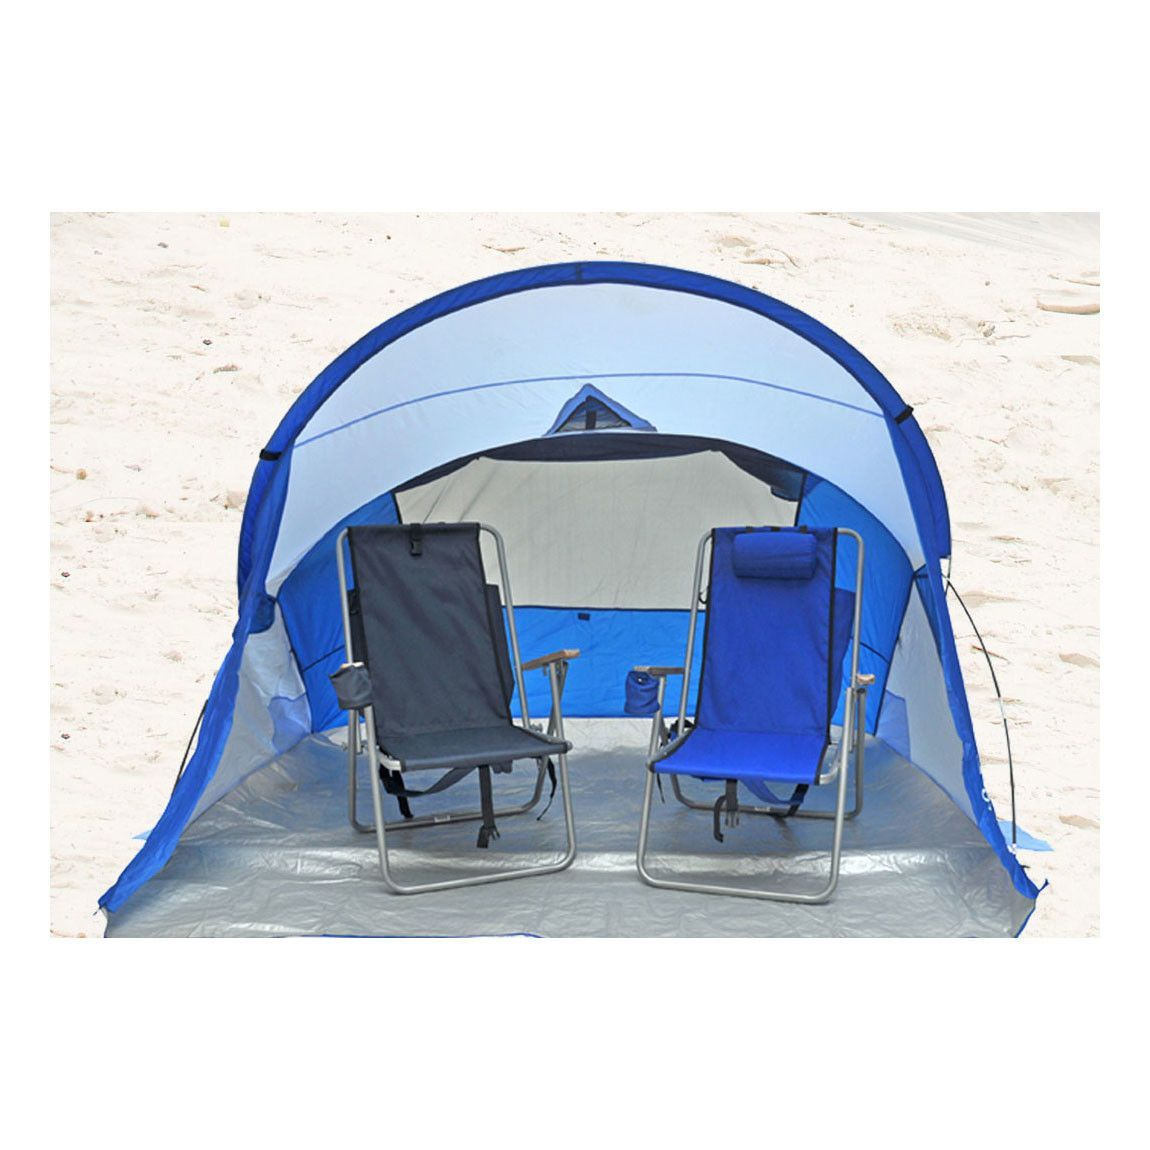 Deluxe Lightweight 2 Person Tent with Carry Bag  sc 1 st  Pinterest & Deluxe Lightweight 2 Person Tent with Carry Bag | Backpack Tents ...